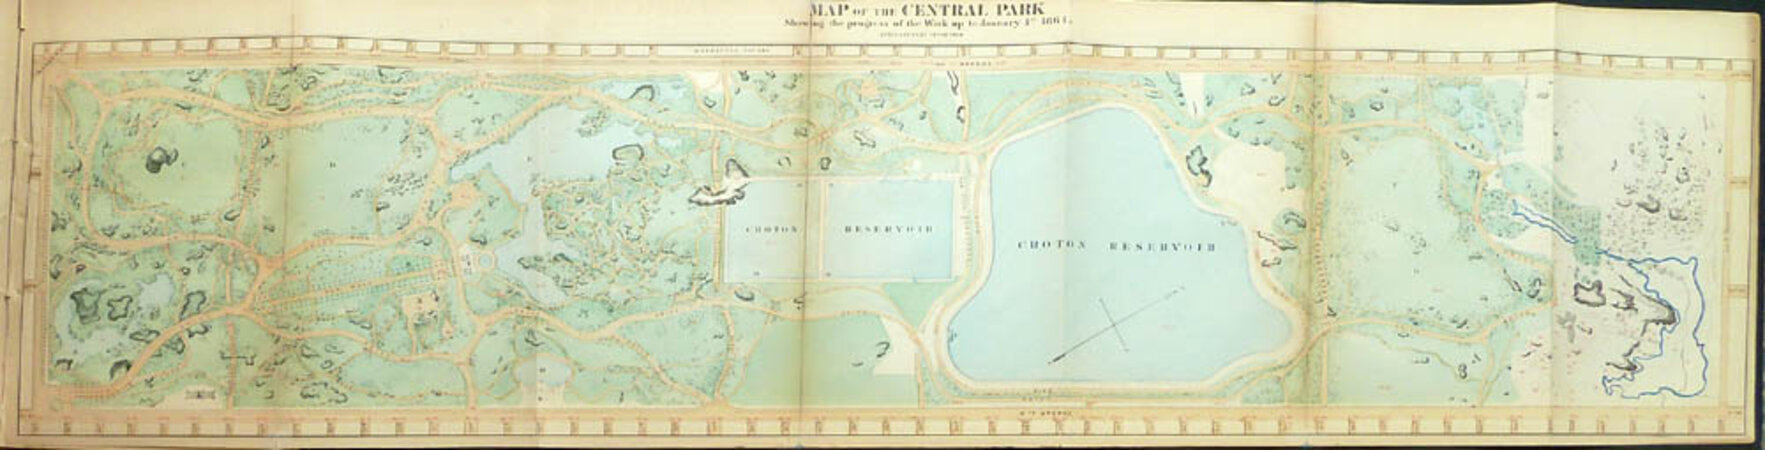 SEVENTH ANNUAL REPORT OF THE BOARD OF COMMISSIONERS OF THE CENTRAL PARK, FOR THE YEAR ENDING WITH DECEMBER 31, 1863. by (Parks - New York, Central Park) BOARD OF COMMISSIONERS OF THE CENTRAL PARK.